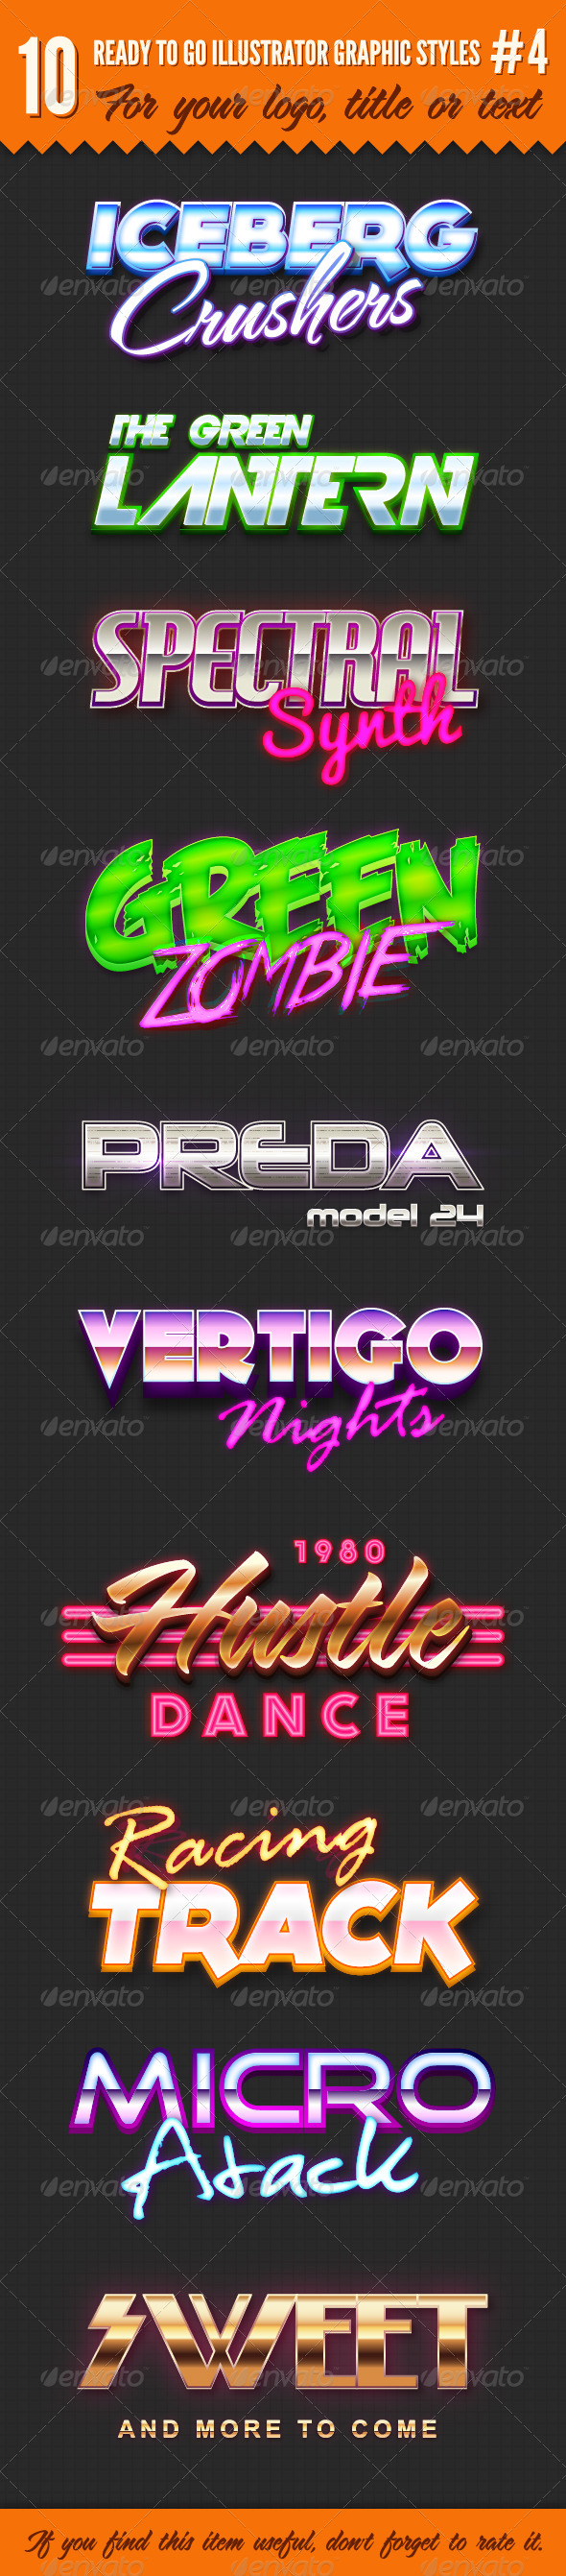 GraphicRiver 10 Logo Graphic Styles #4 4690870